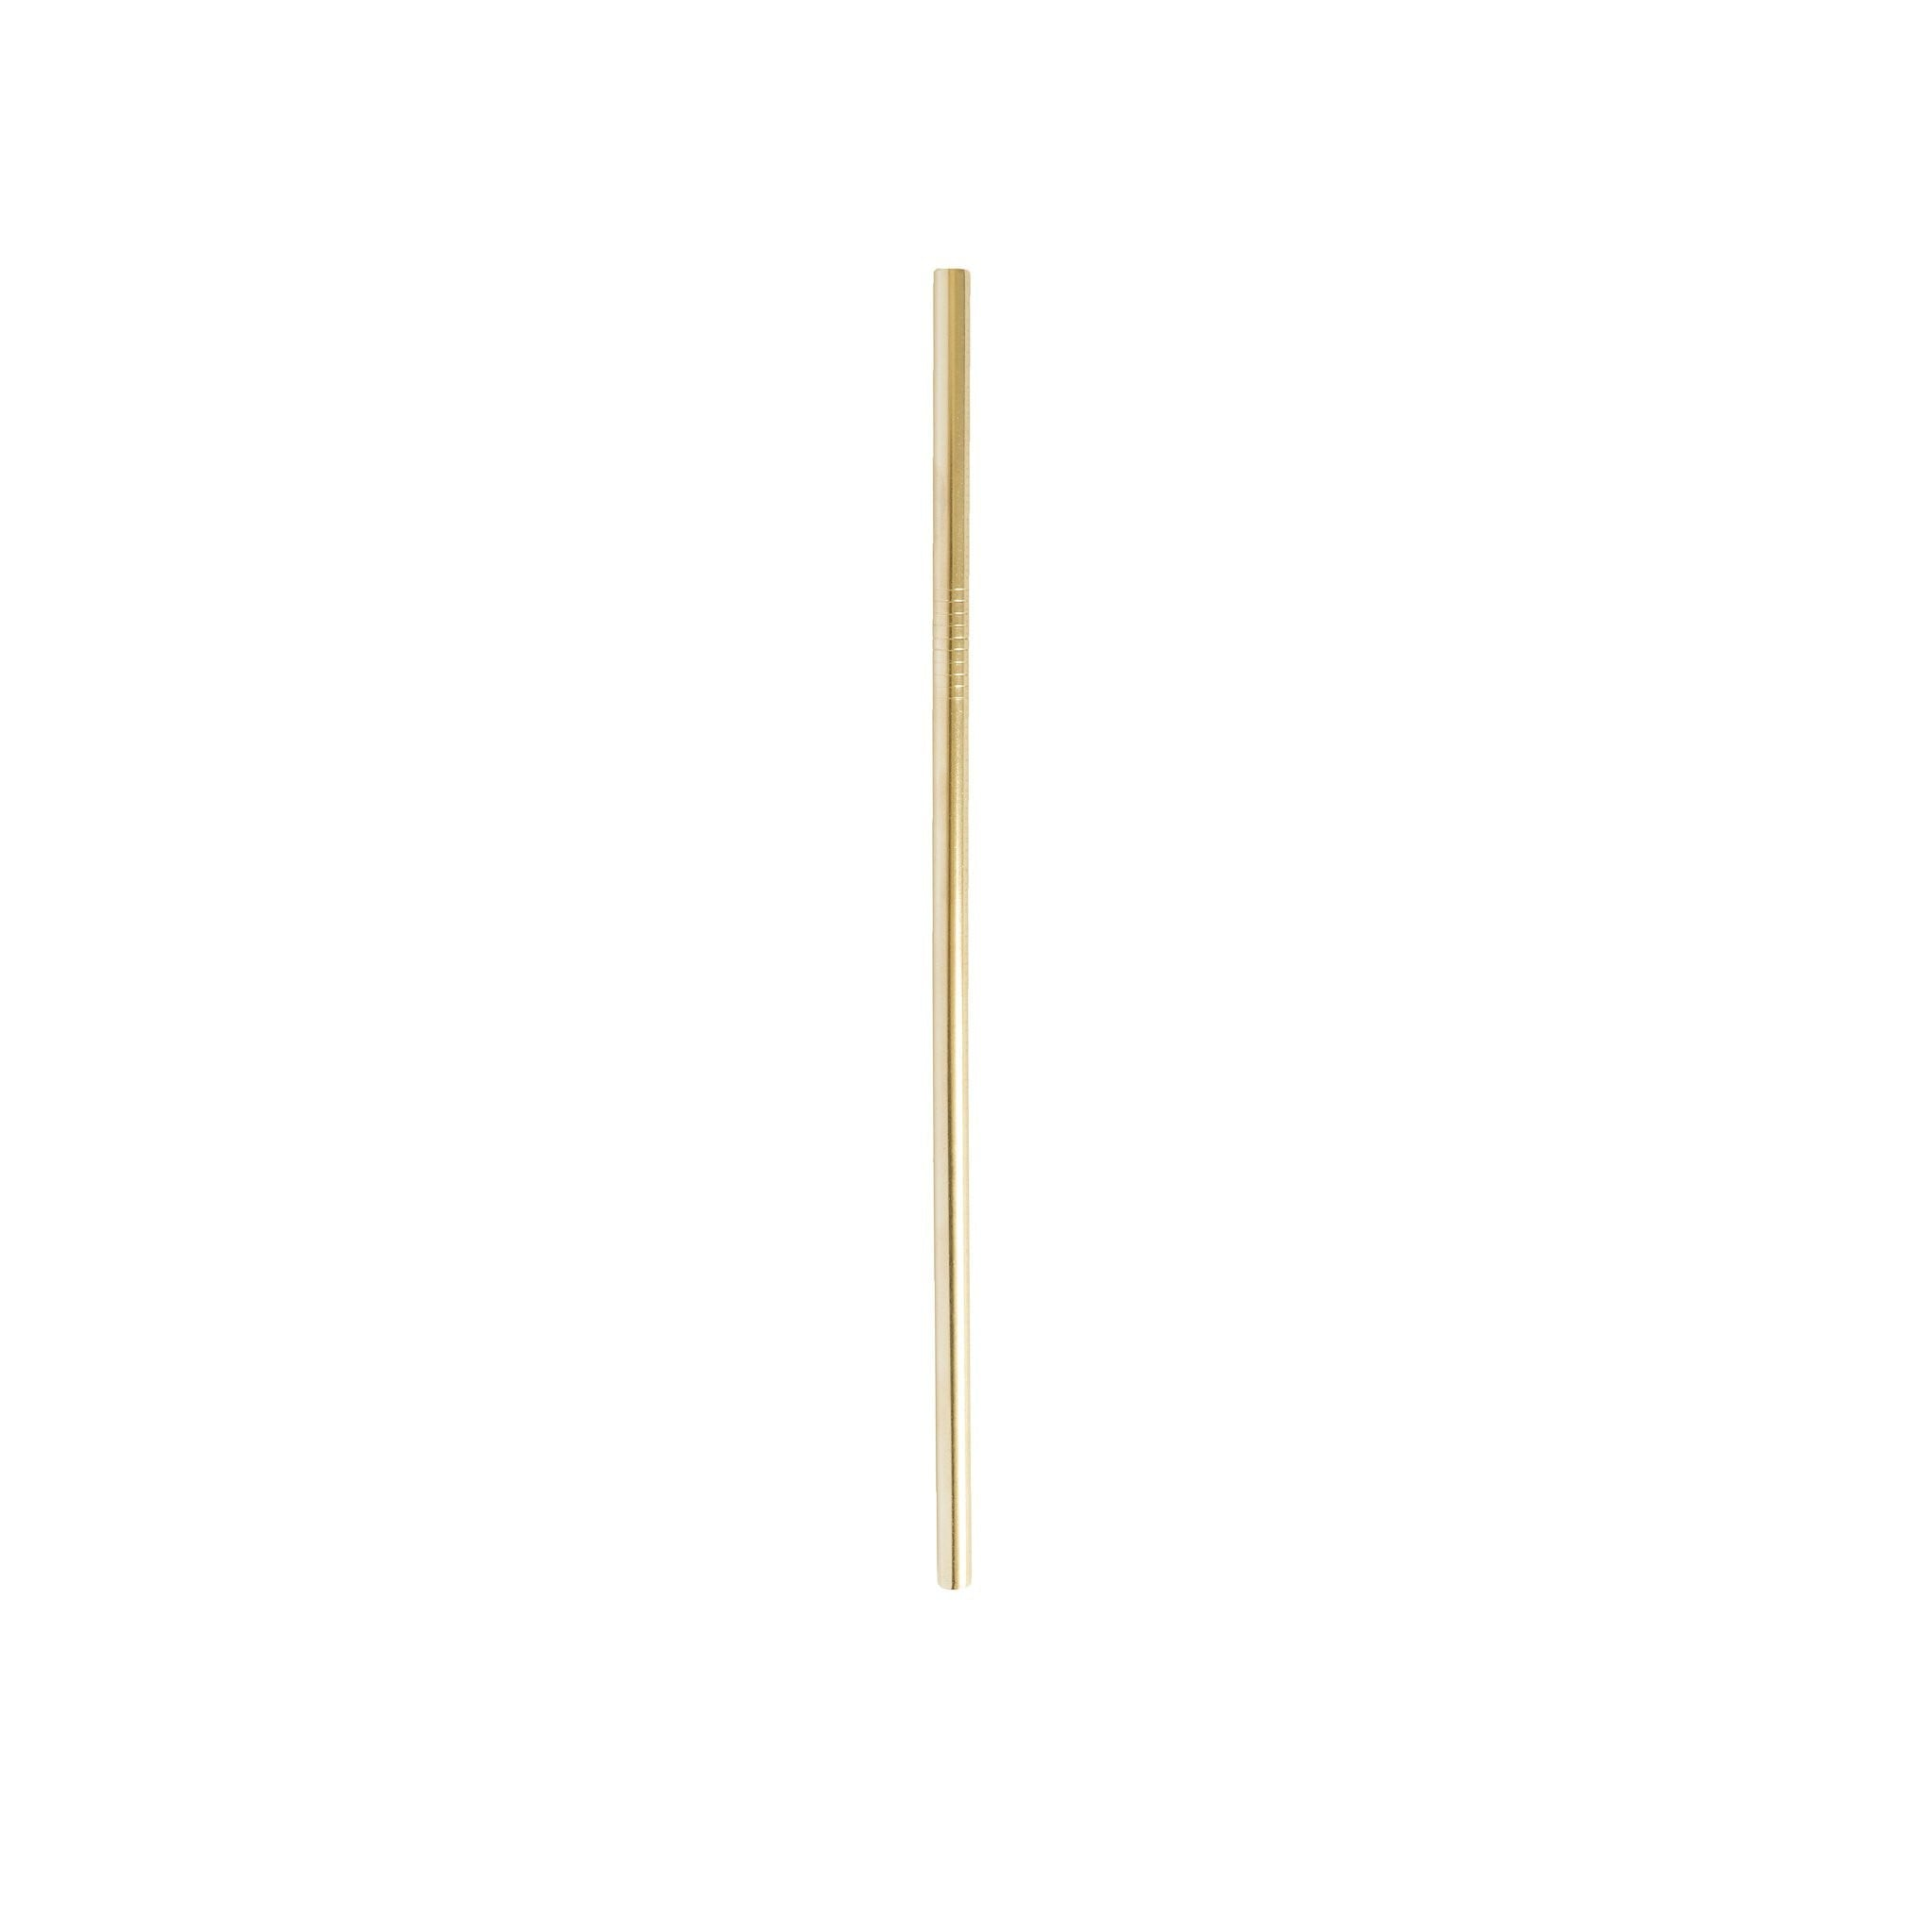 Gold 6 mm straight stainless steel straw.